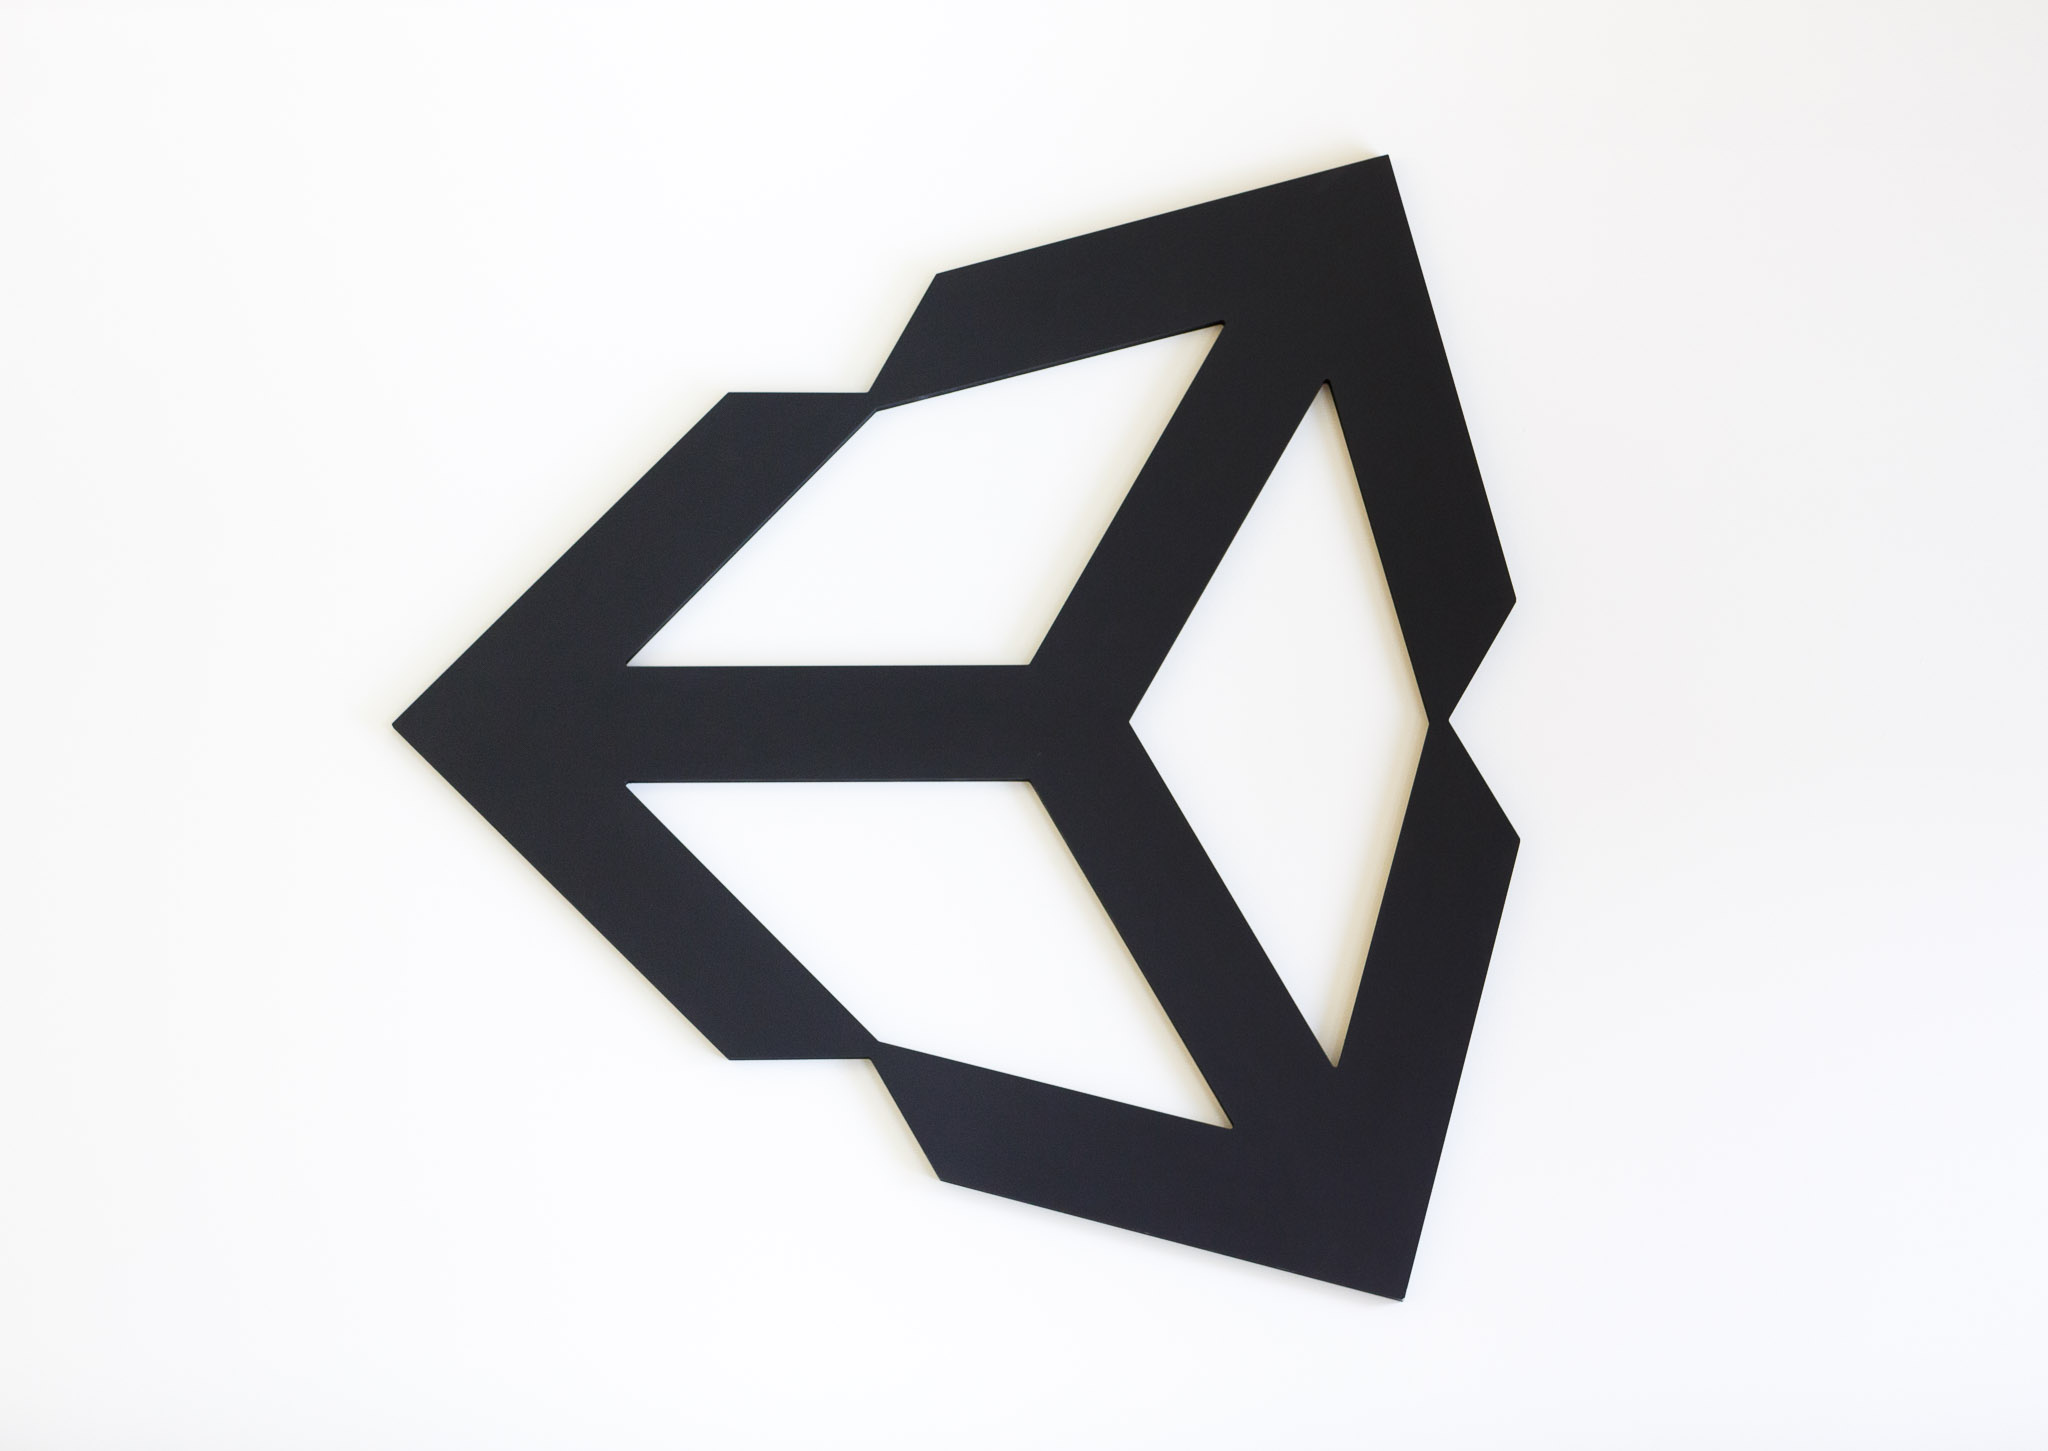 Unity's logo appears as giant wall art at the company's San Francisco office.